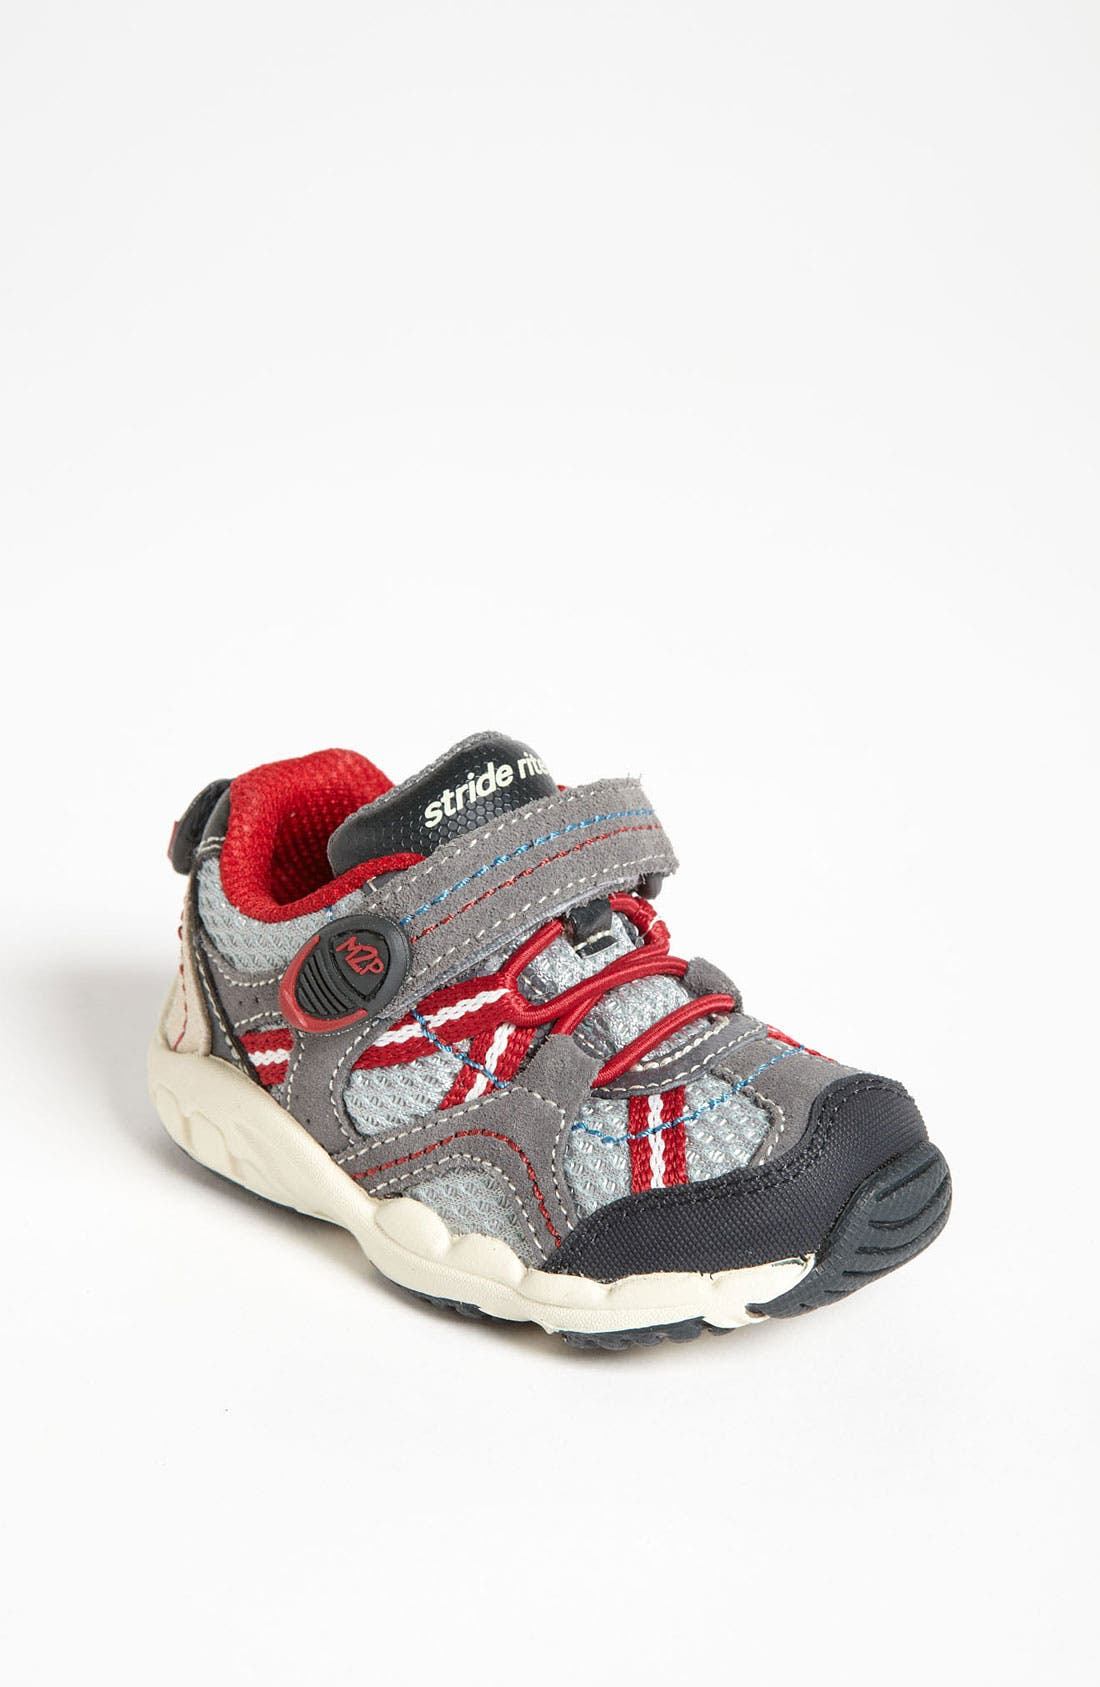 Main Image - Stride Rite 'Baby Griffin' Sneaker (Baby, Walker & Toddler)